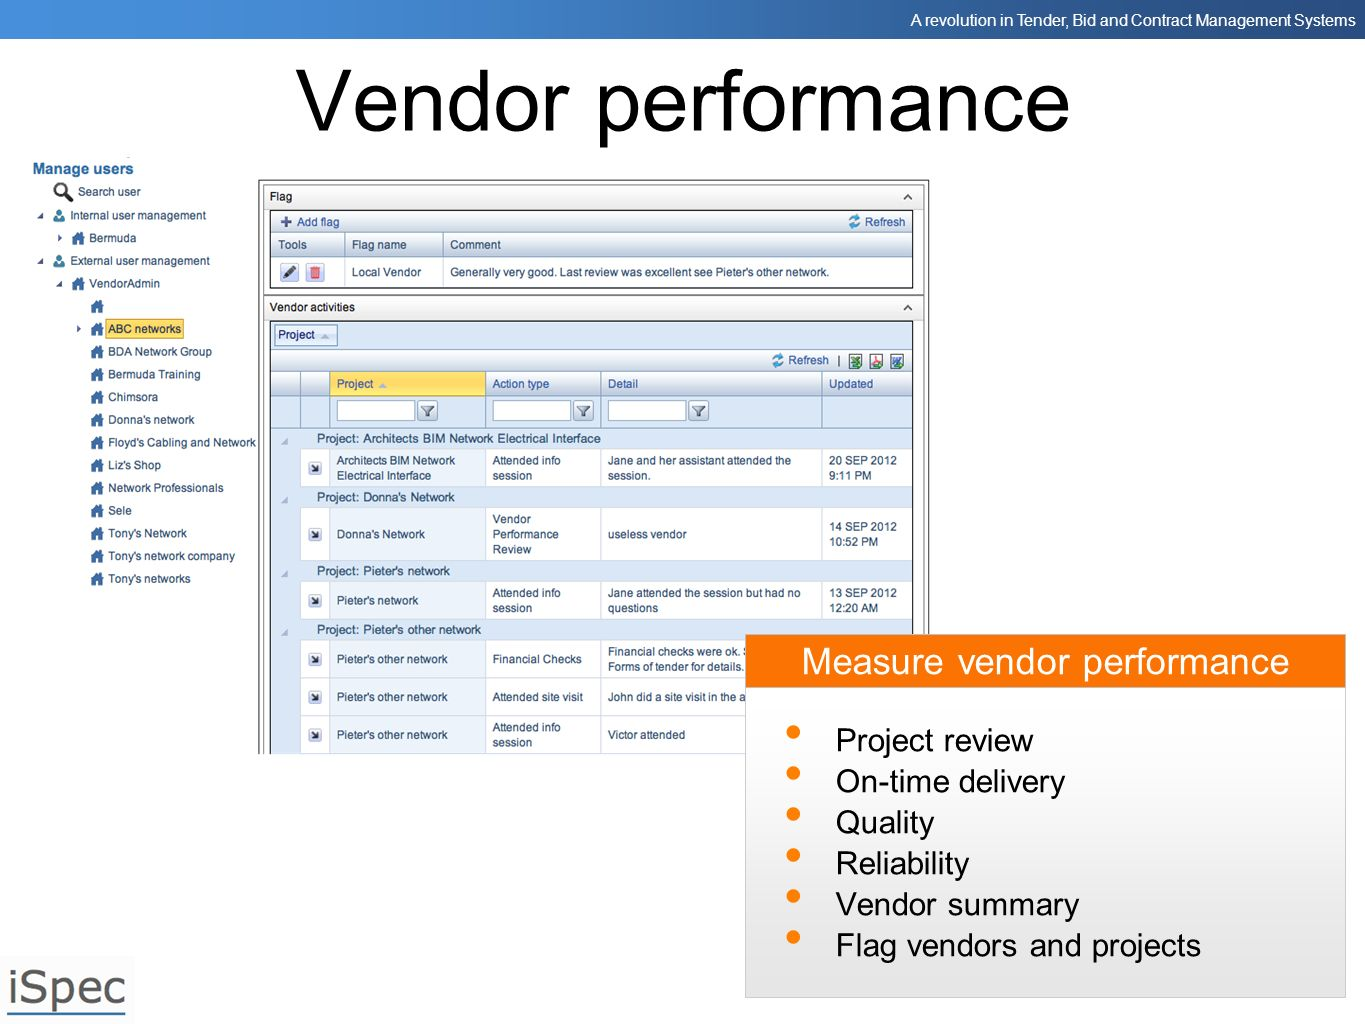 Measure vendor performance